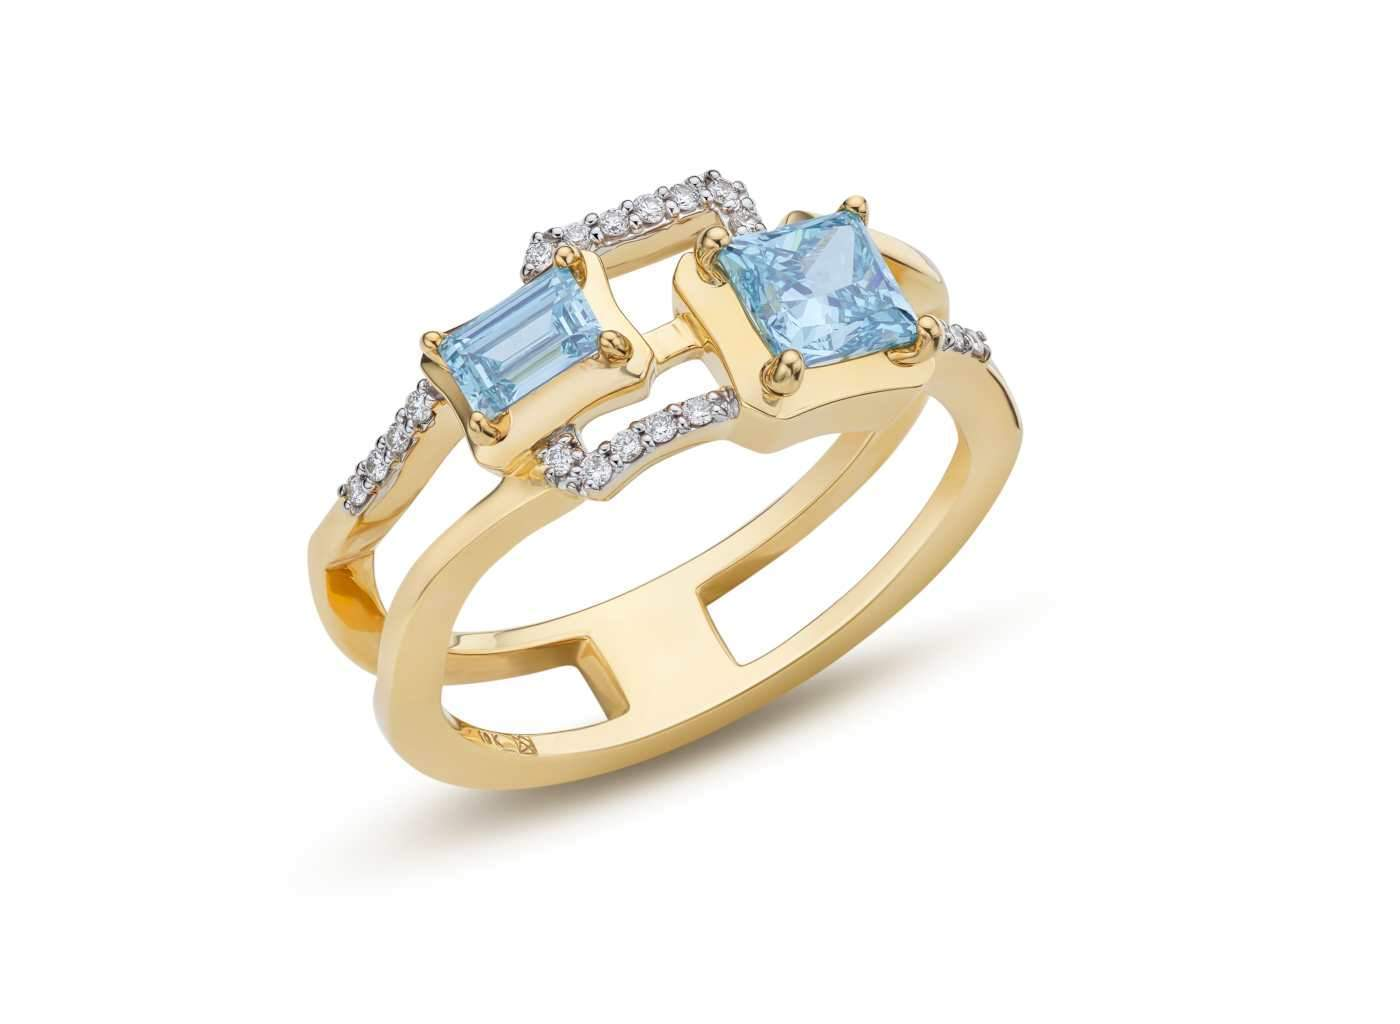 Side view of 2 Stone Frame work Ring with blue and white diamonds